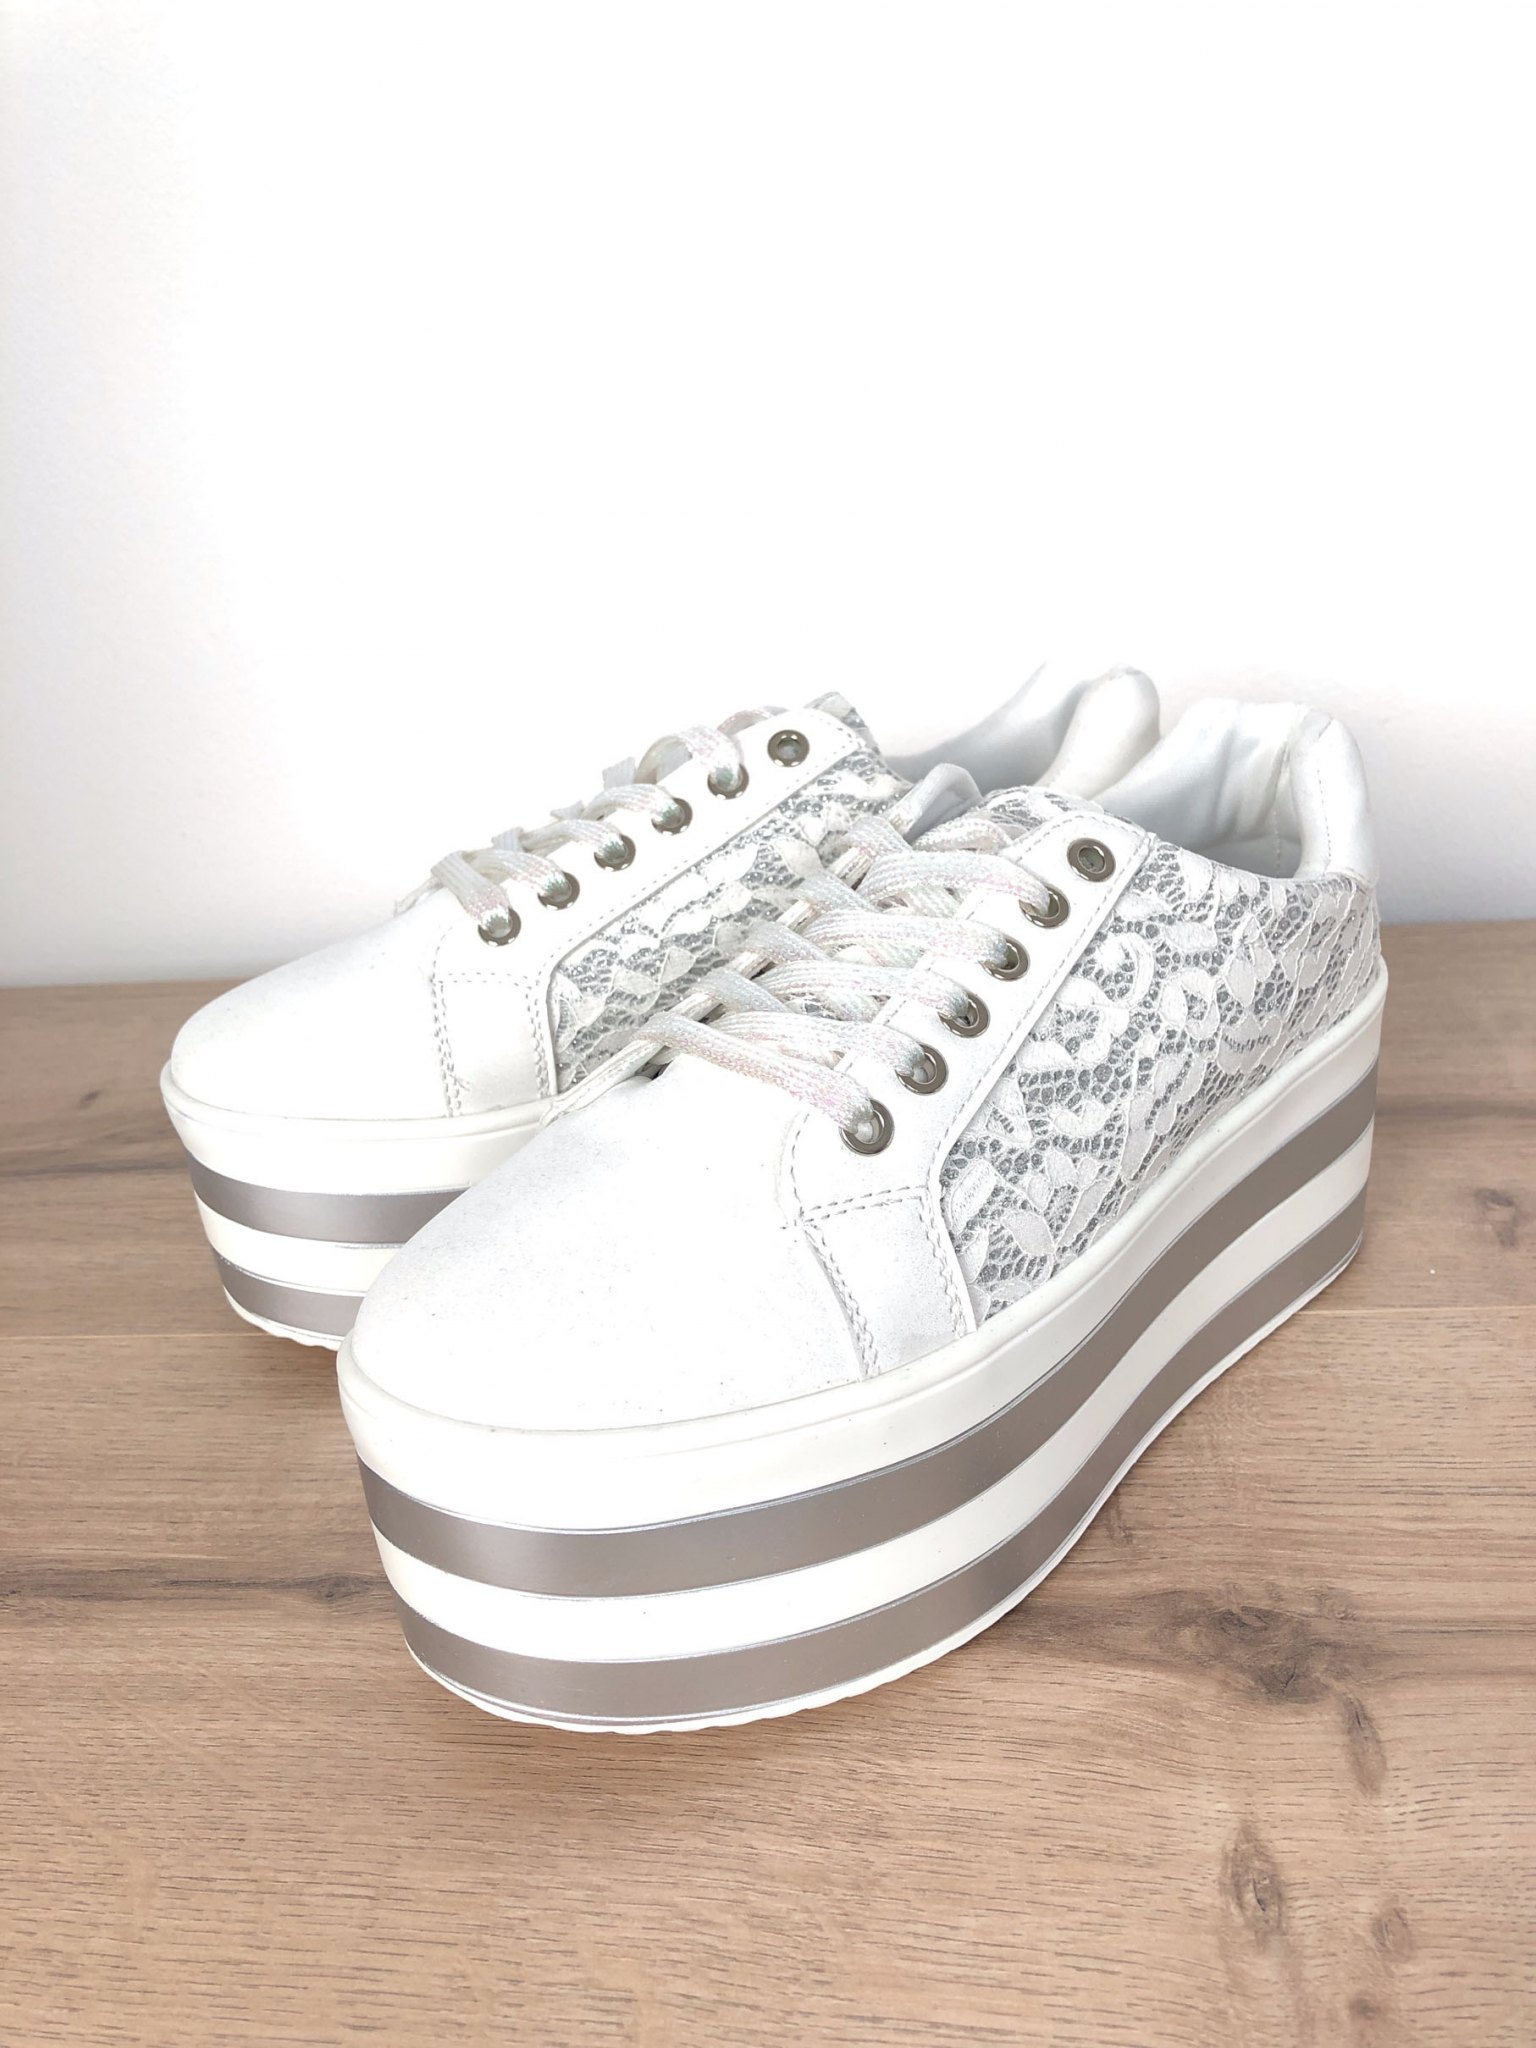 reputable site f7527 fe75a Plateau-Sneaker mit Spitze weiss